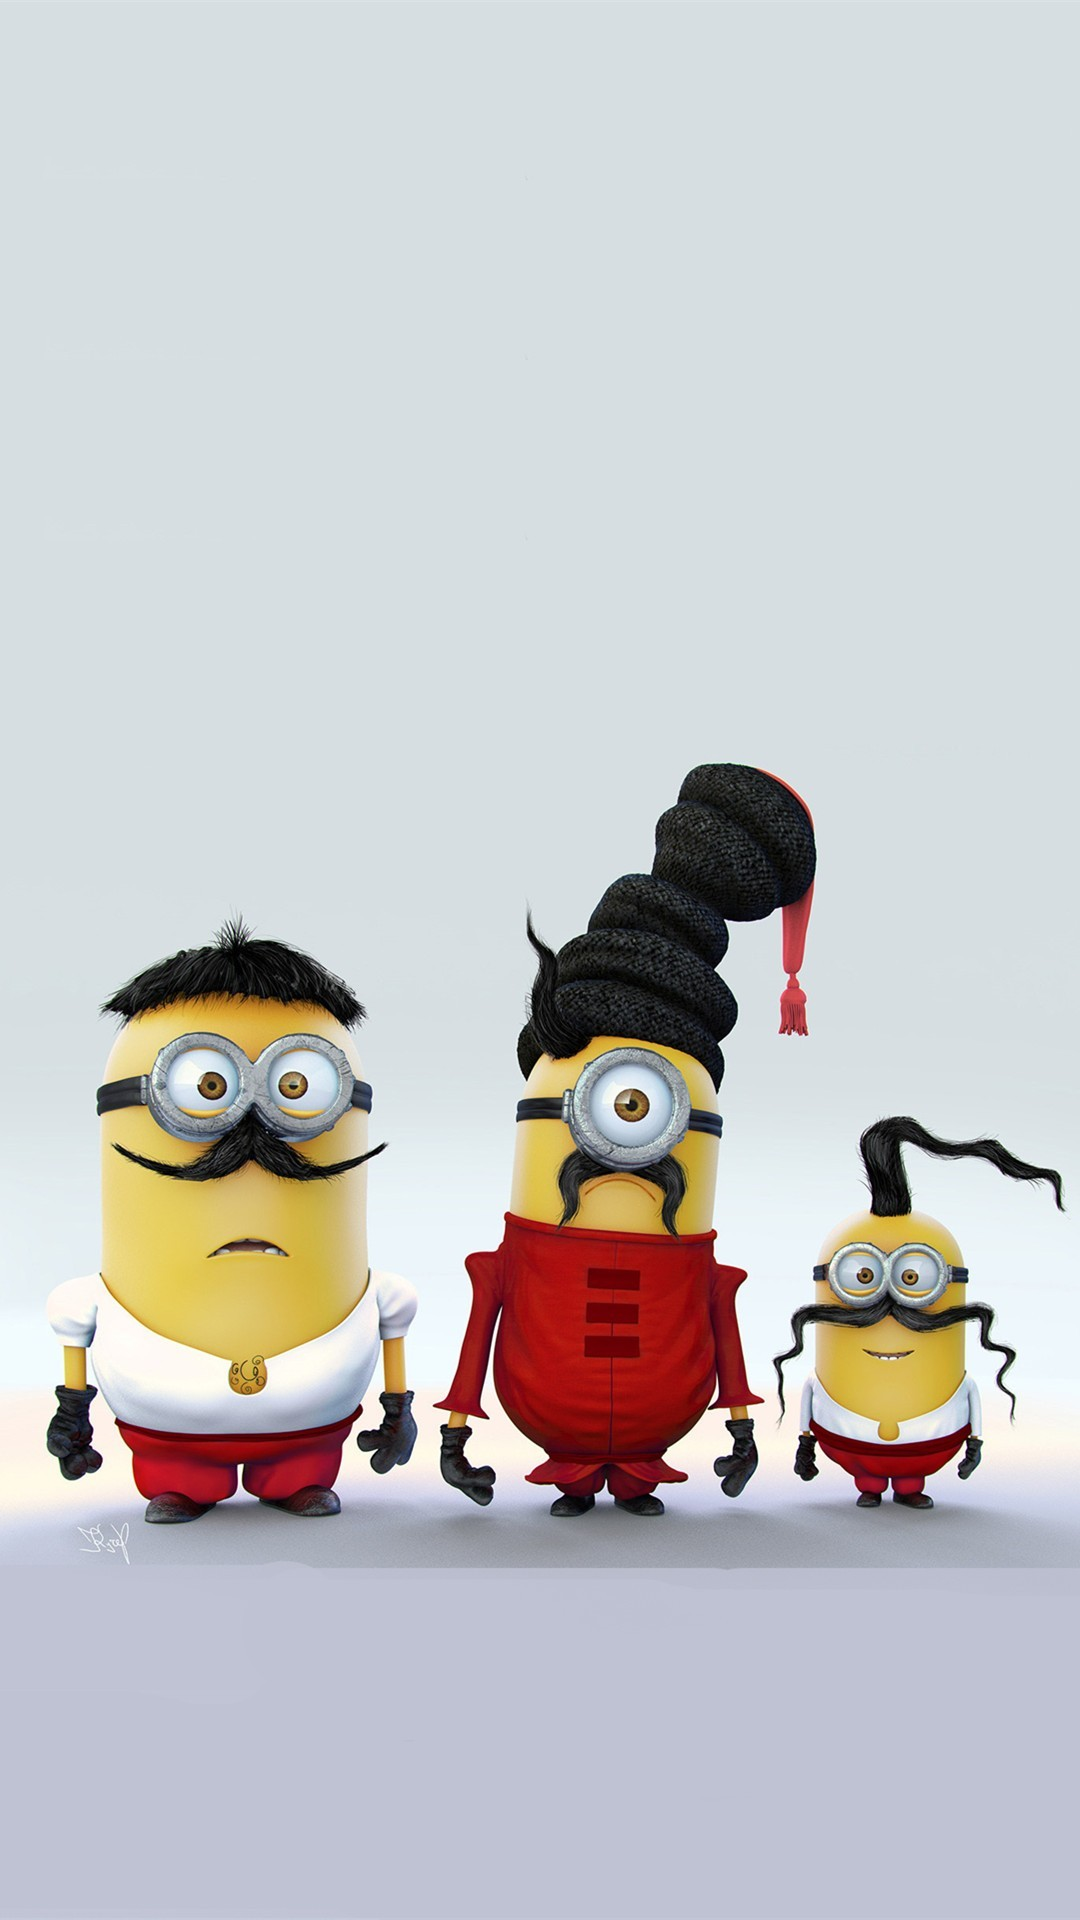 1080x1920 Minions with Mustache Family iPhone 6 Plus Wallpaper - HD, 2014 Halloween,  Despicable Me